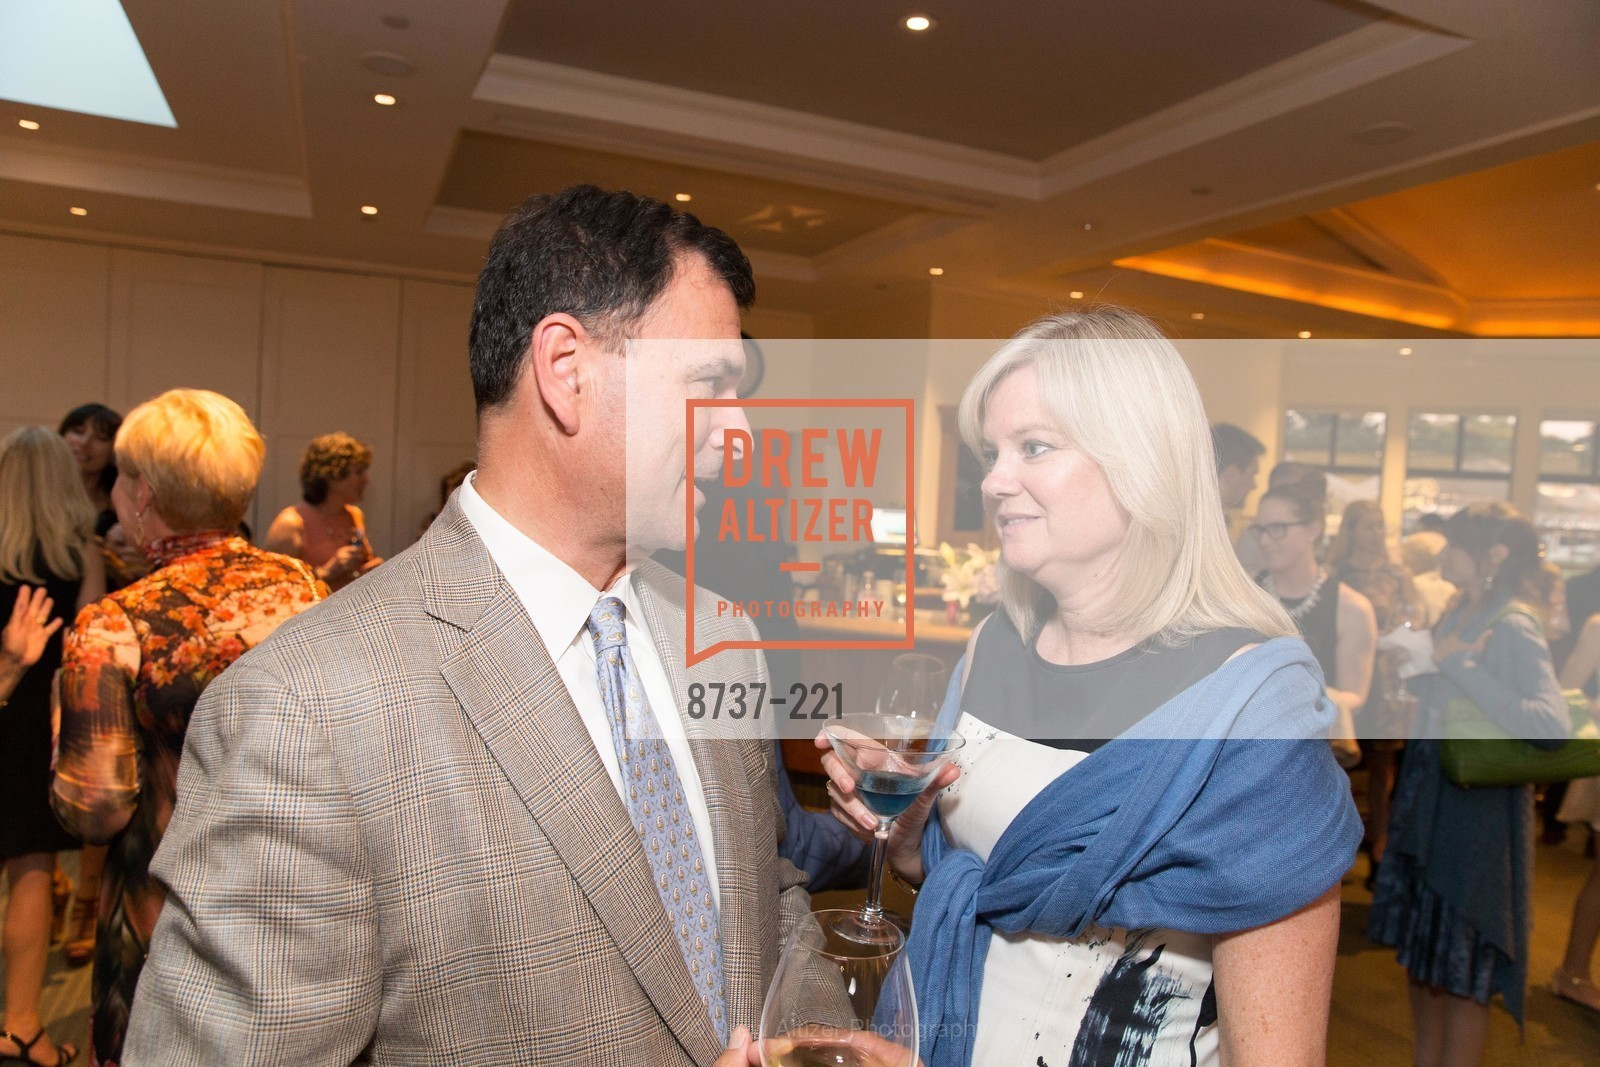 Extras, Menlo Charity Horse Show Gala, August 7th, 2015, Photo,Drew Altizer, Drew Altizer Photography, full-service agency, private events, San Francisco photographer, photographer california